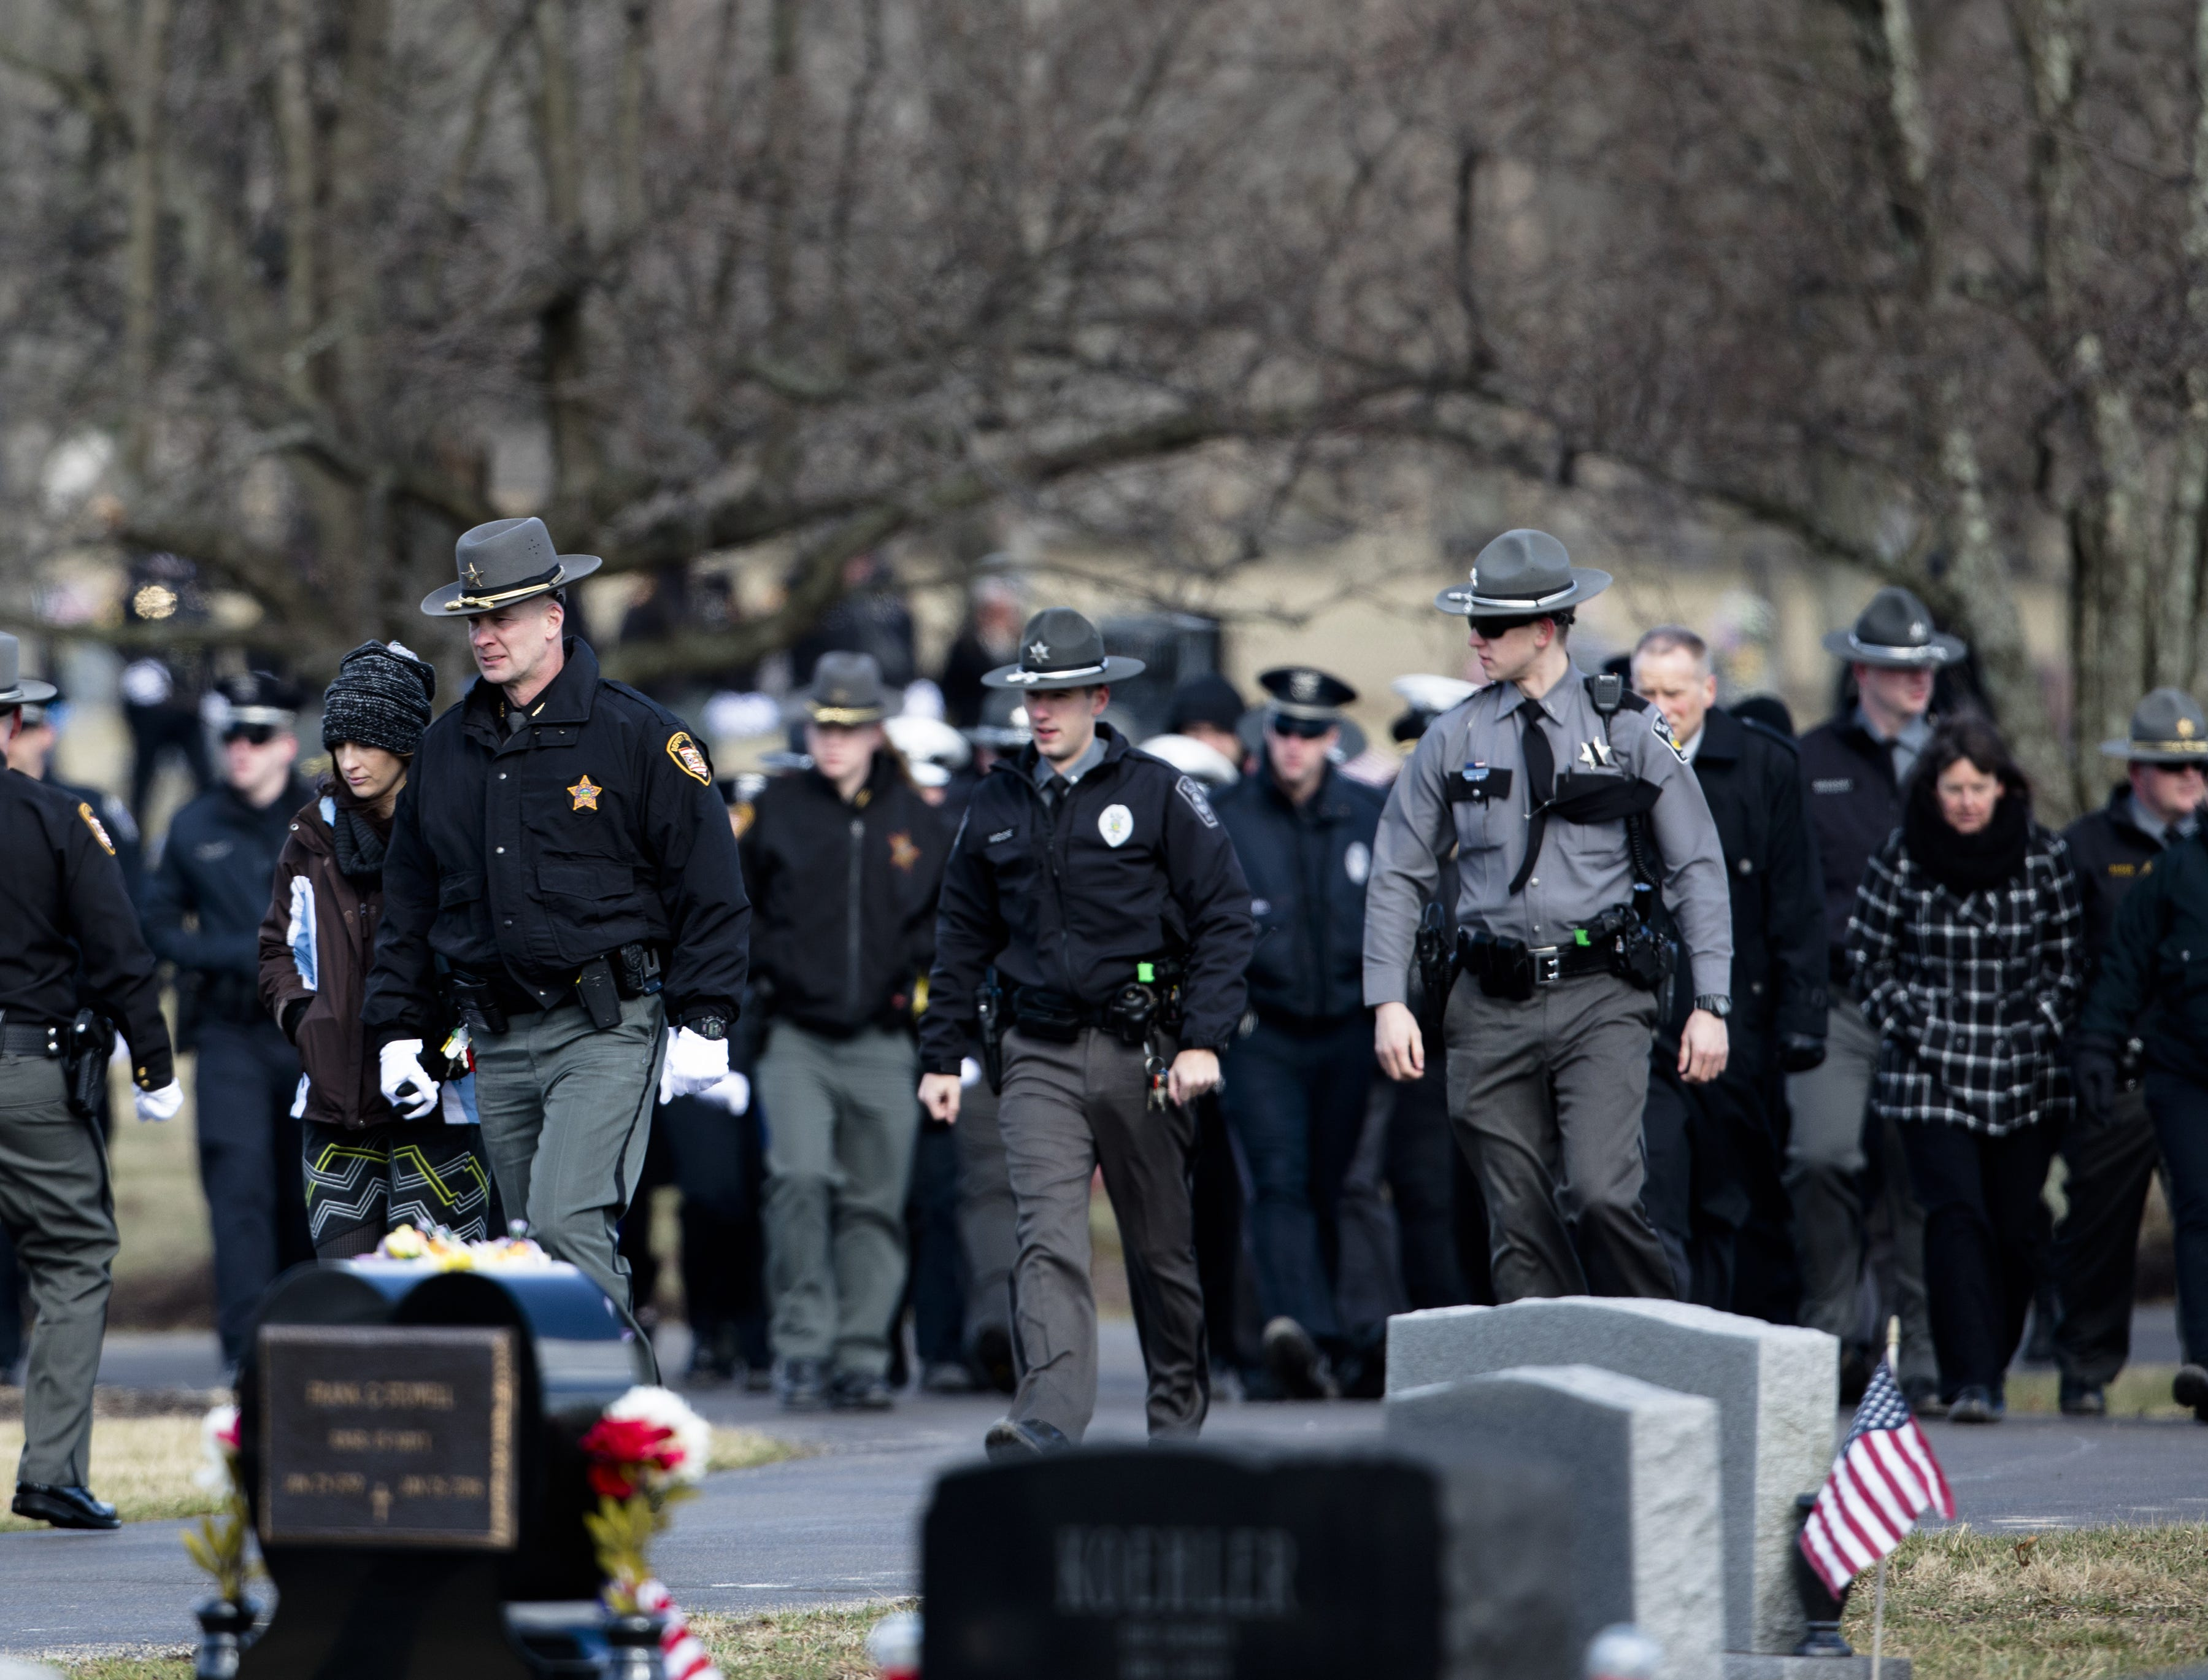 Family, friends and fellow police officers arrive for the burial service of Detective Bill Brewer, a 20-year veteran of the Clermont County Sheriff's Office, on Friday, Feb. 8, 2019, at Pierce Township Cemetery in Cincinnati. Brewer, 42, of Pierce Township, died in the line of duty. He was shot Feb. 2 during a standoff. Deputy Brewer is survived by a wife and 5-year-old son.